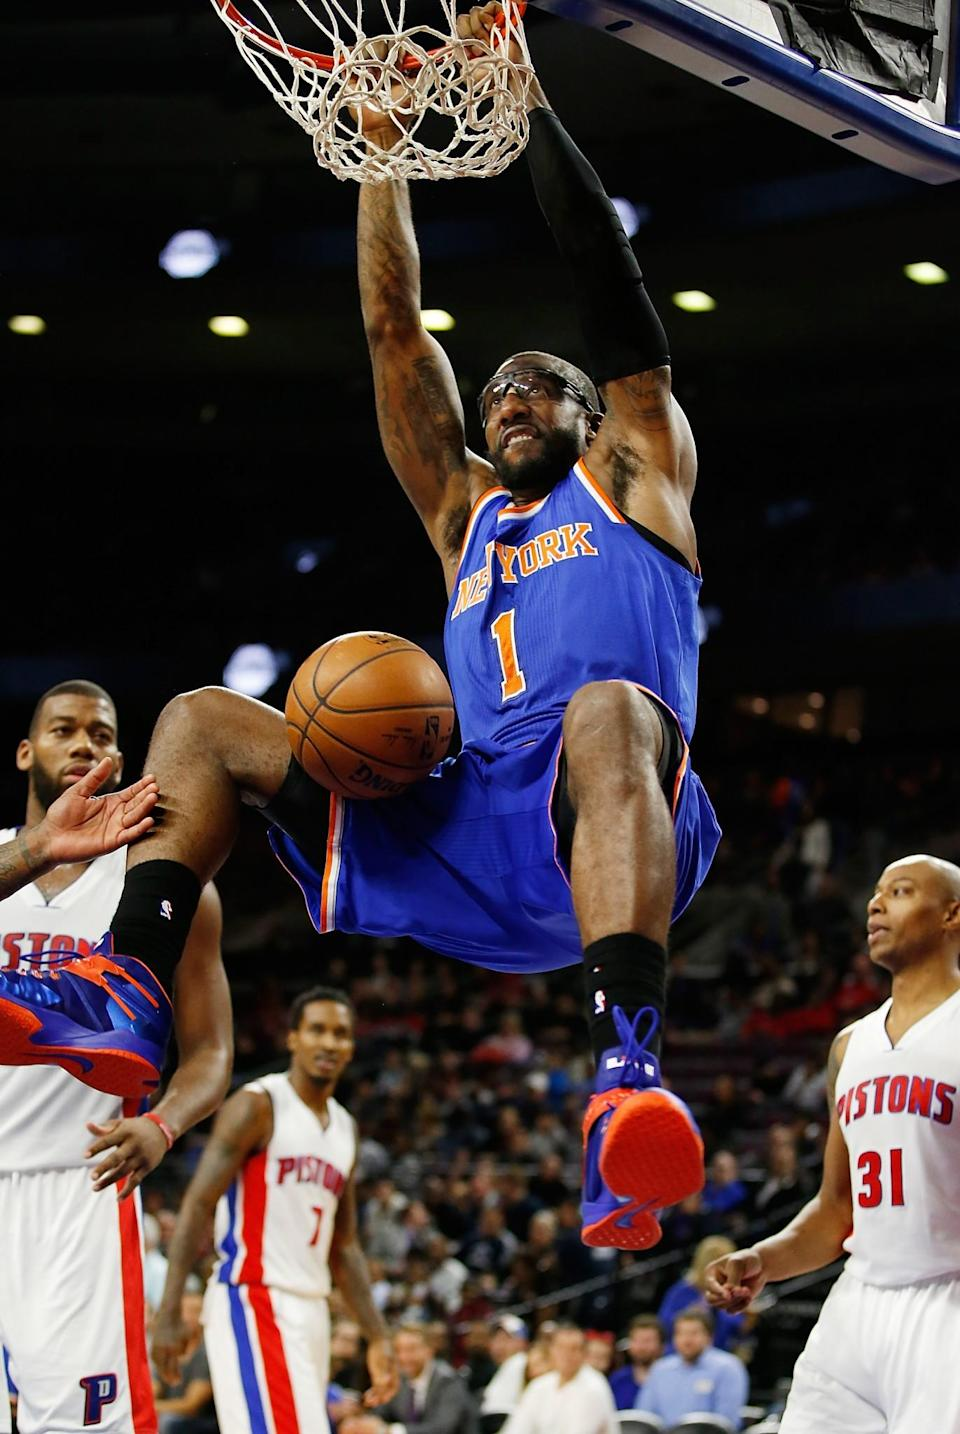 <p>Amare Stoudemire was selected 9th overall by the Phoenix Suns in 2002. Had he gone to college, he likely would have gone to Memphis. </p>